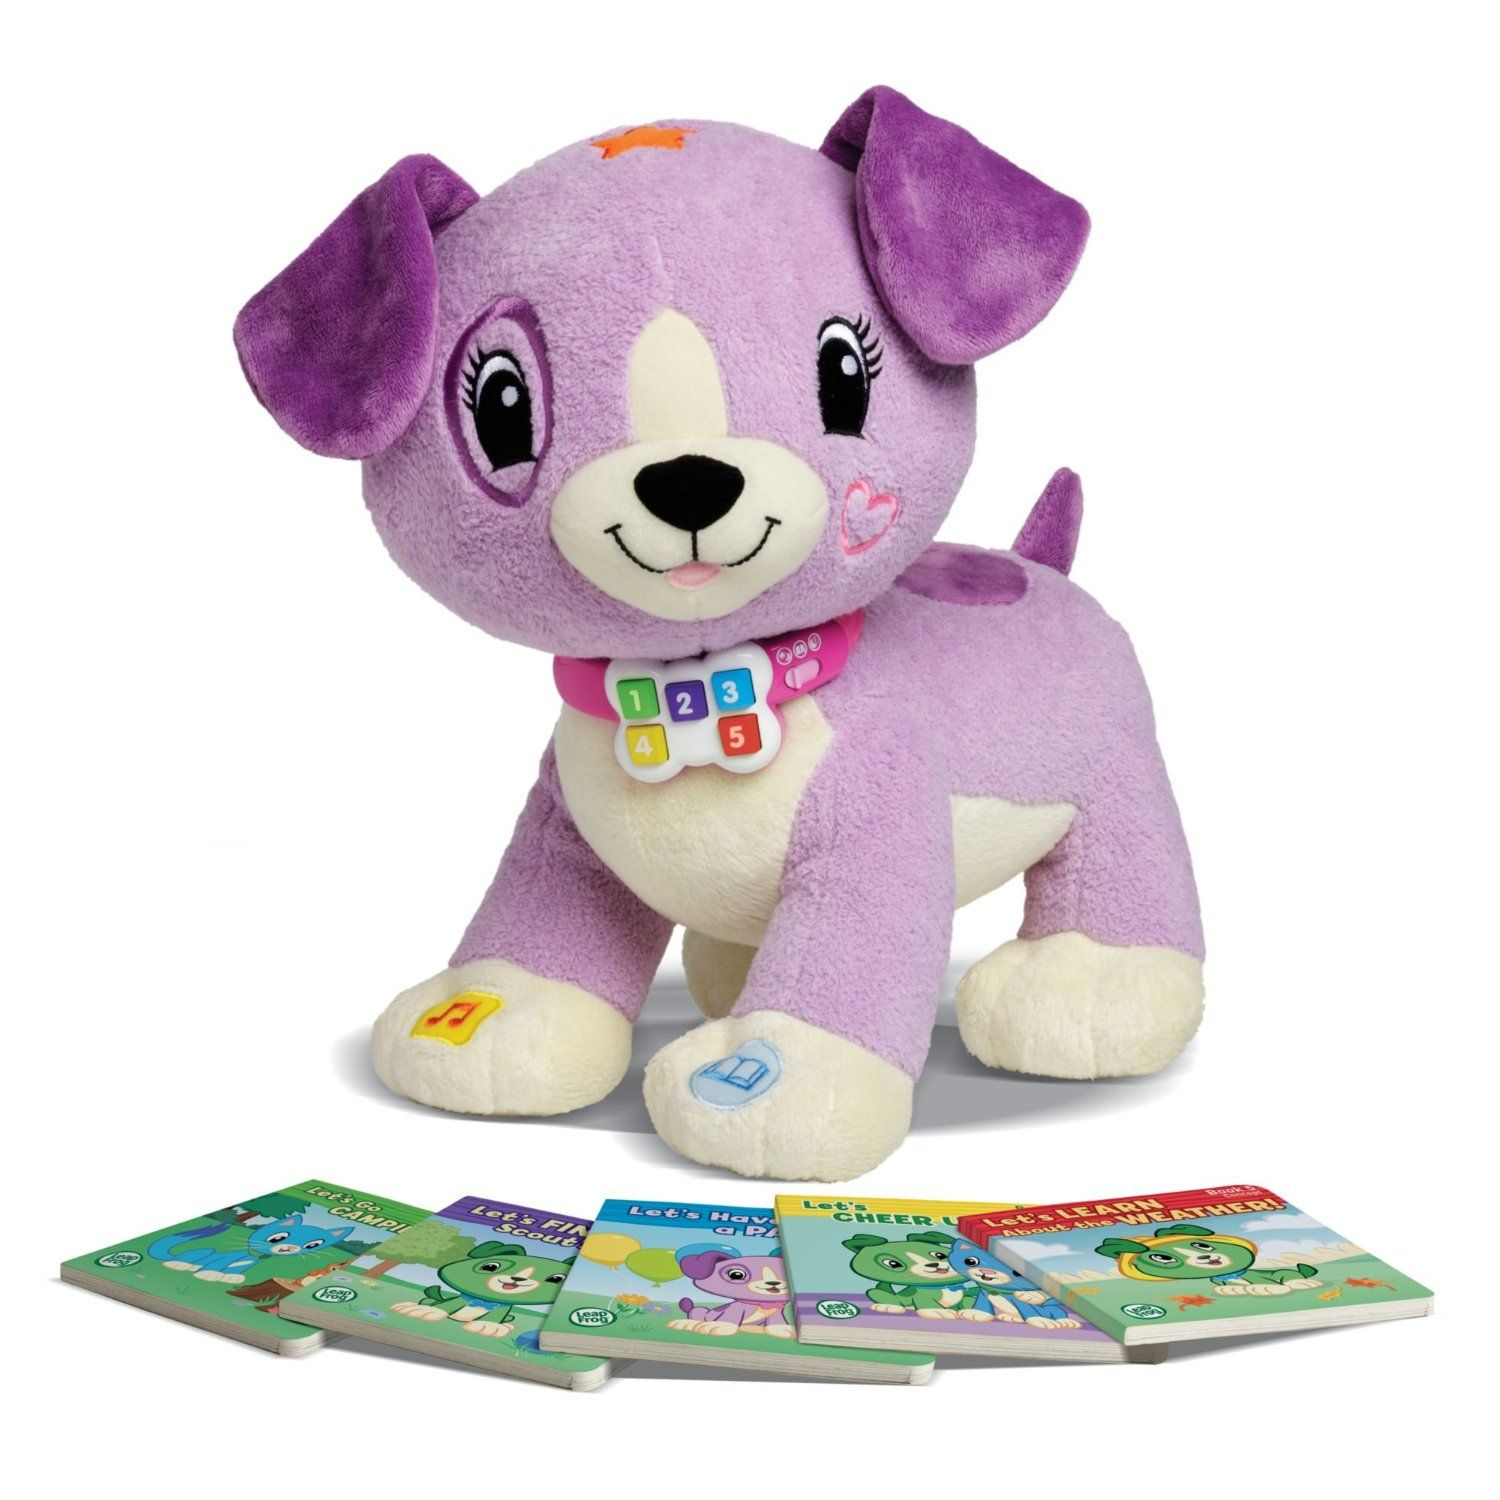 Toys and me images  Amazon LeapFrog Read with Me Violet Toys u Games  Future Toy